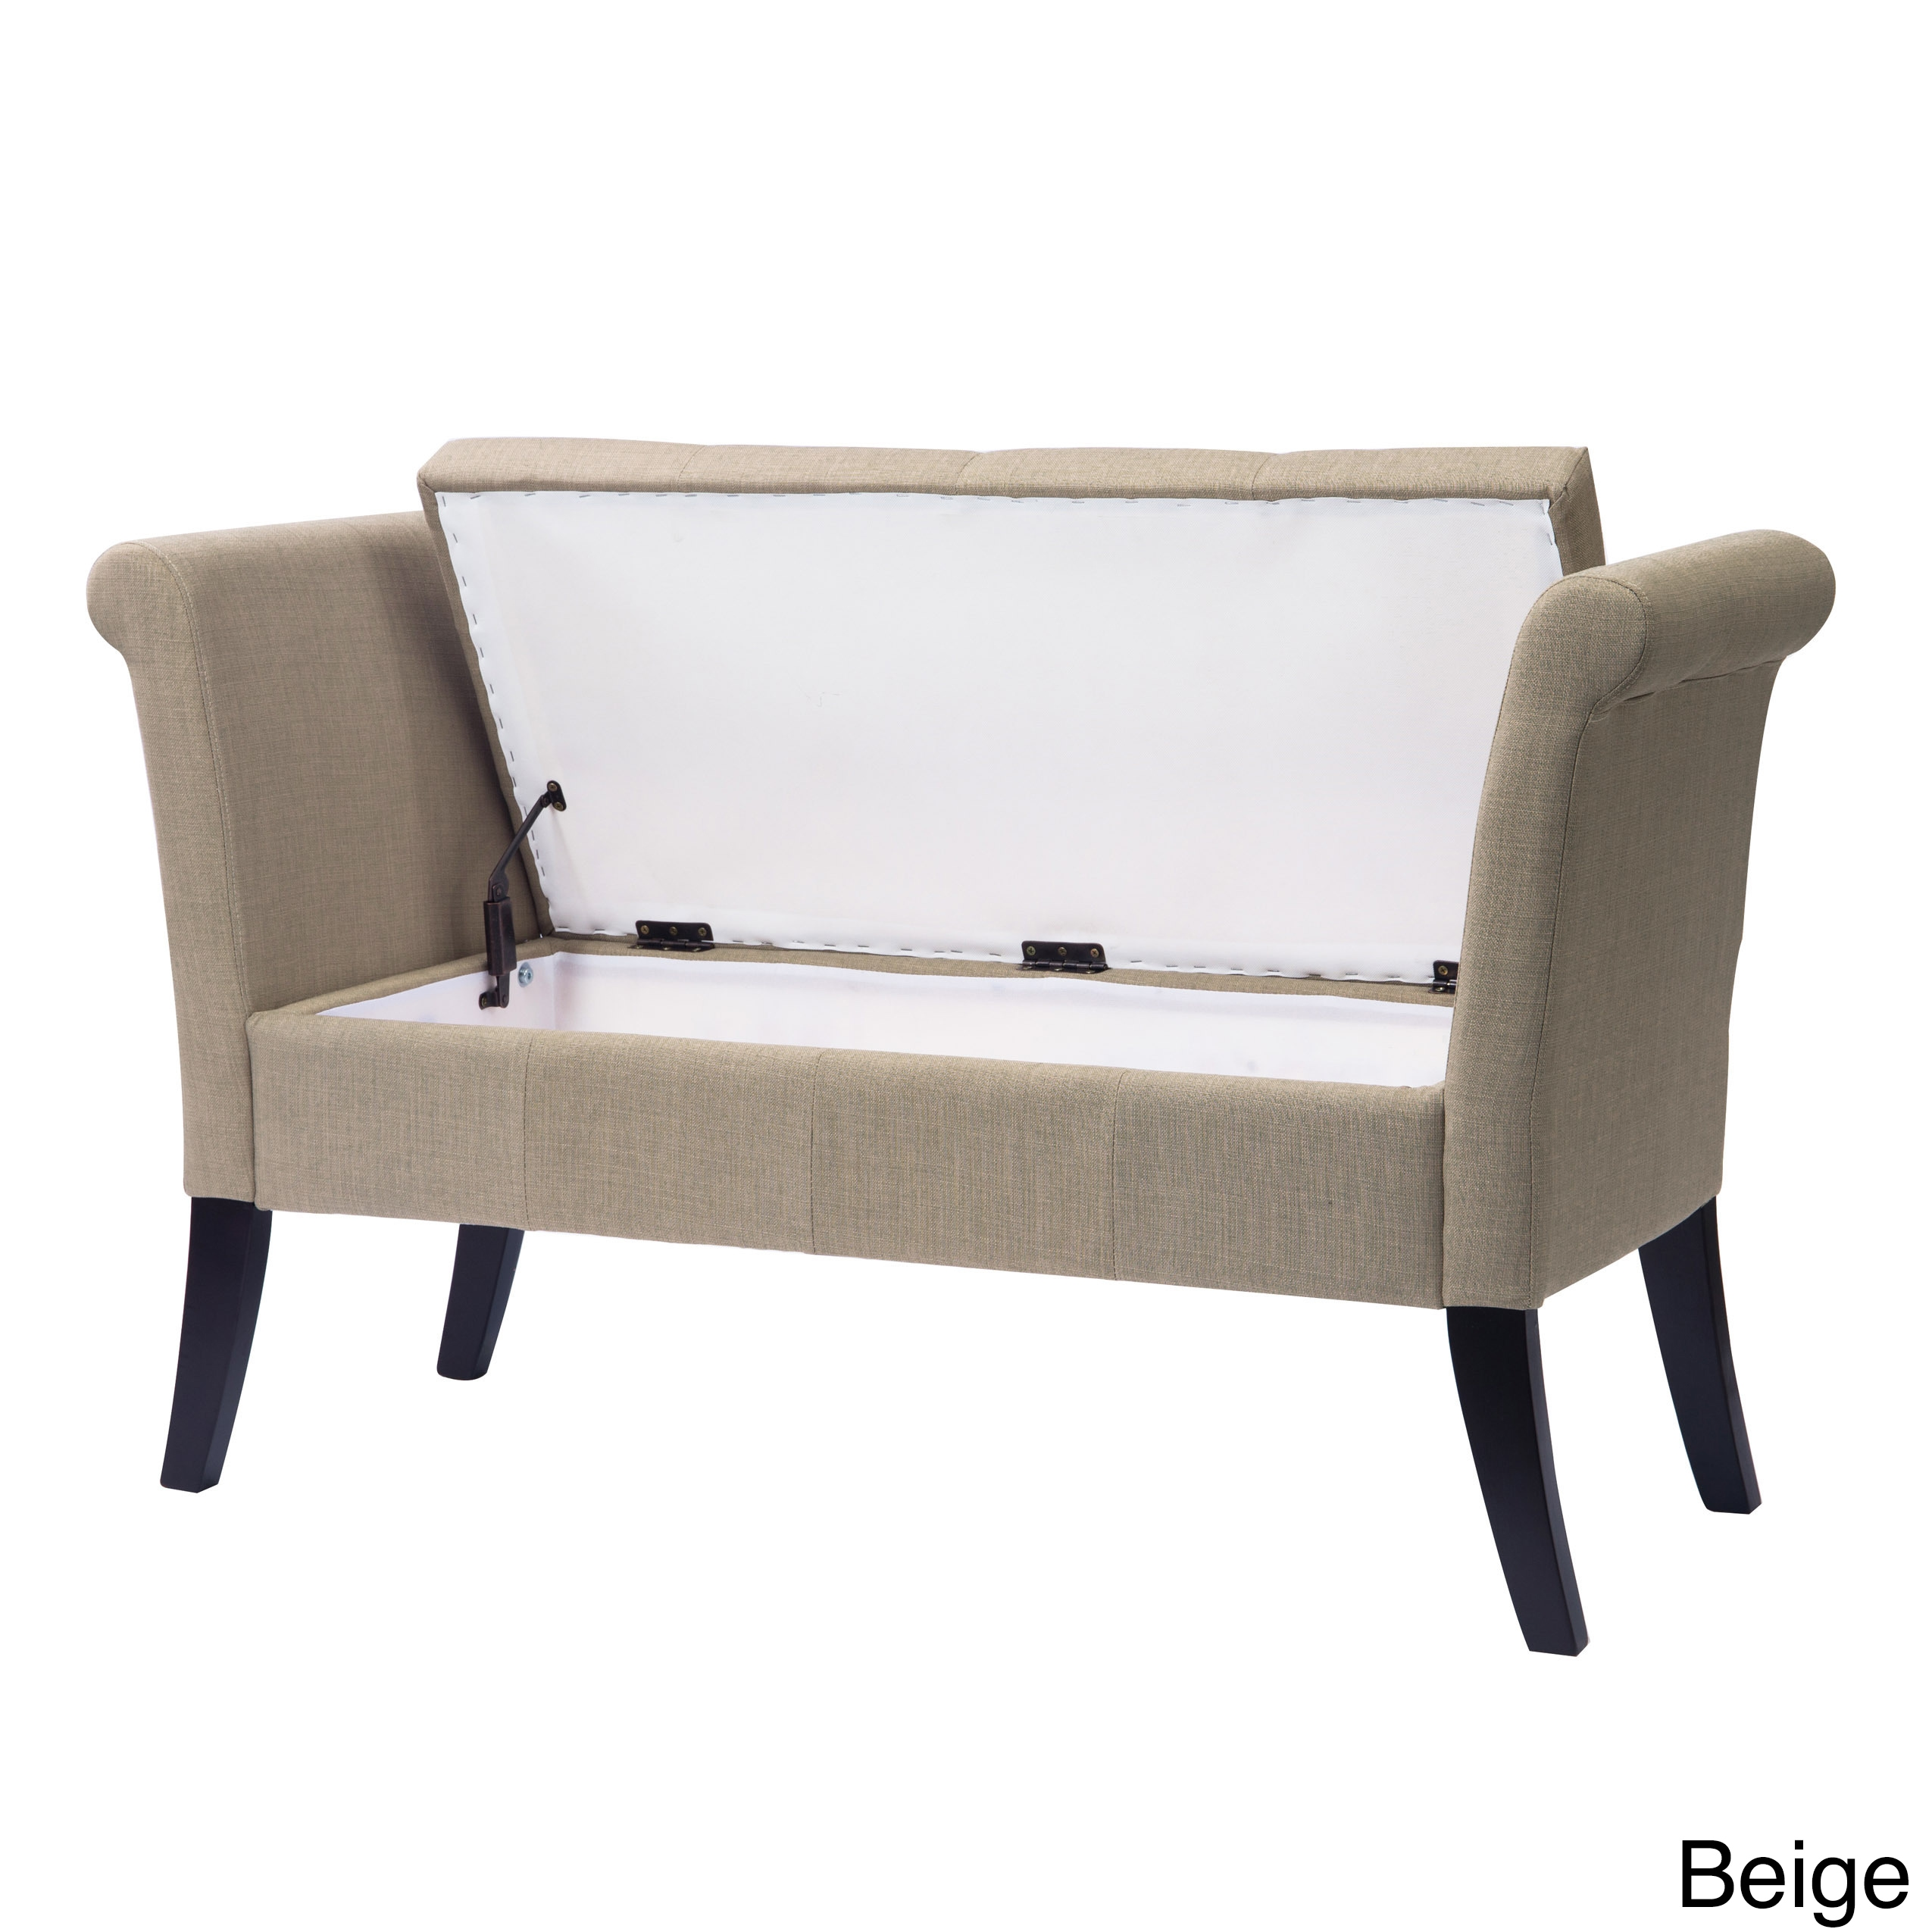 CorLiving Antonio Upholstered Storage Bench with Scrolled...